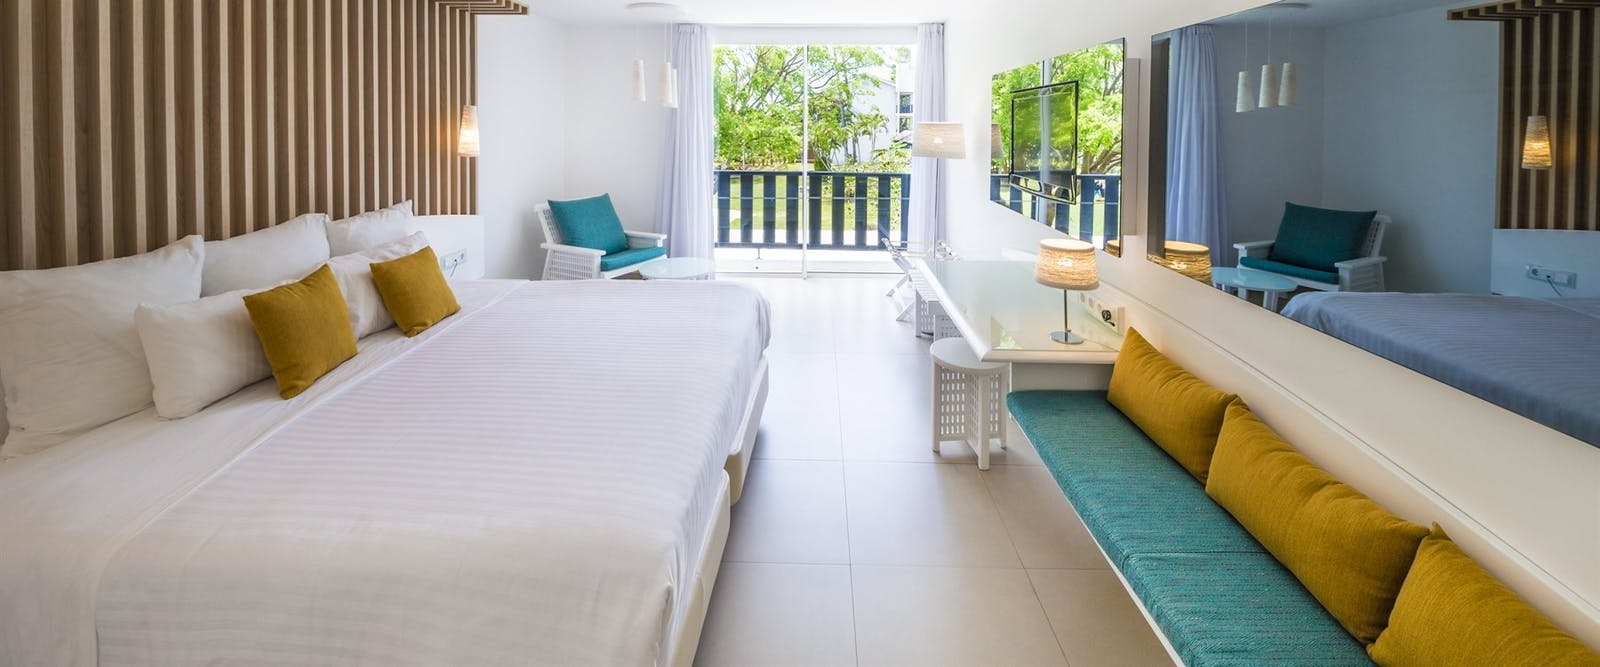 Superior King Bedroom at La Creole Beach Hotel & Spa, Guadeloupe